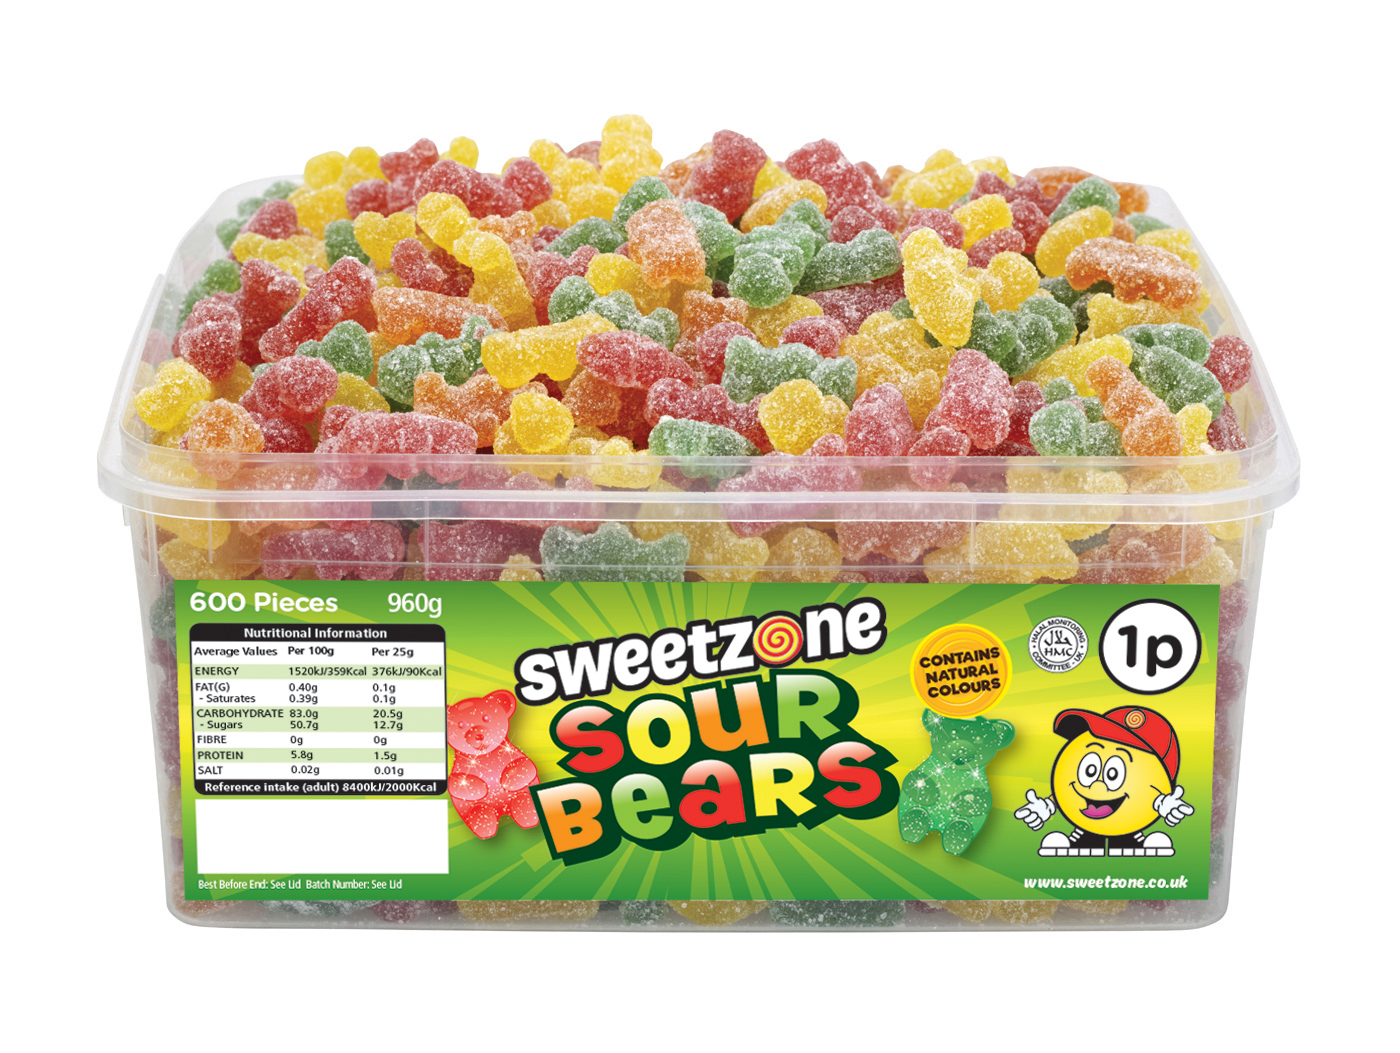 Sweetzone 1p Sour Bears